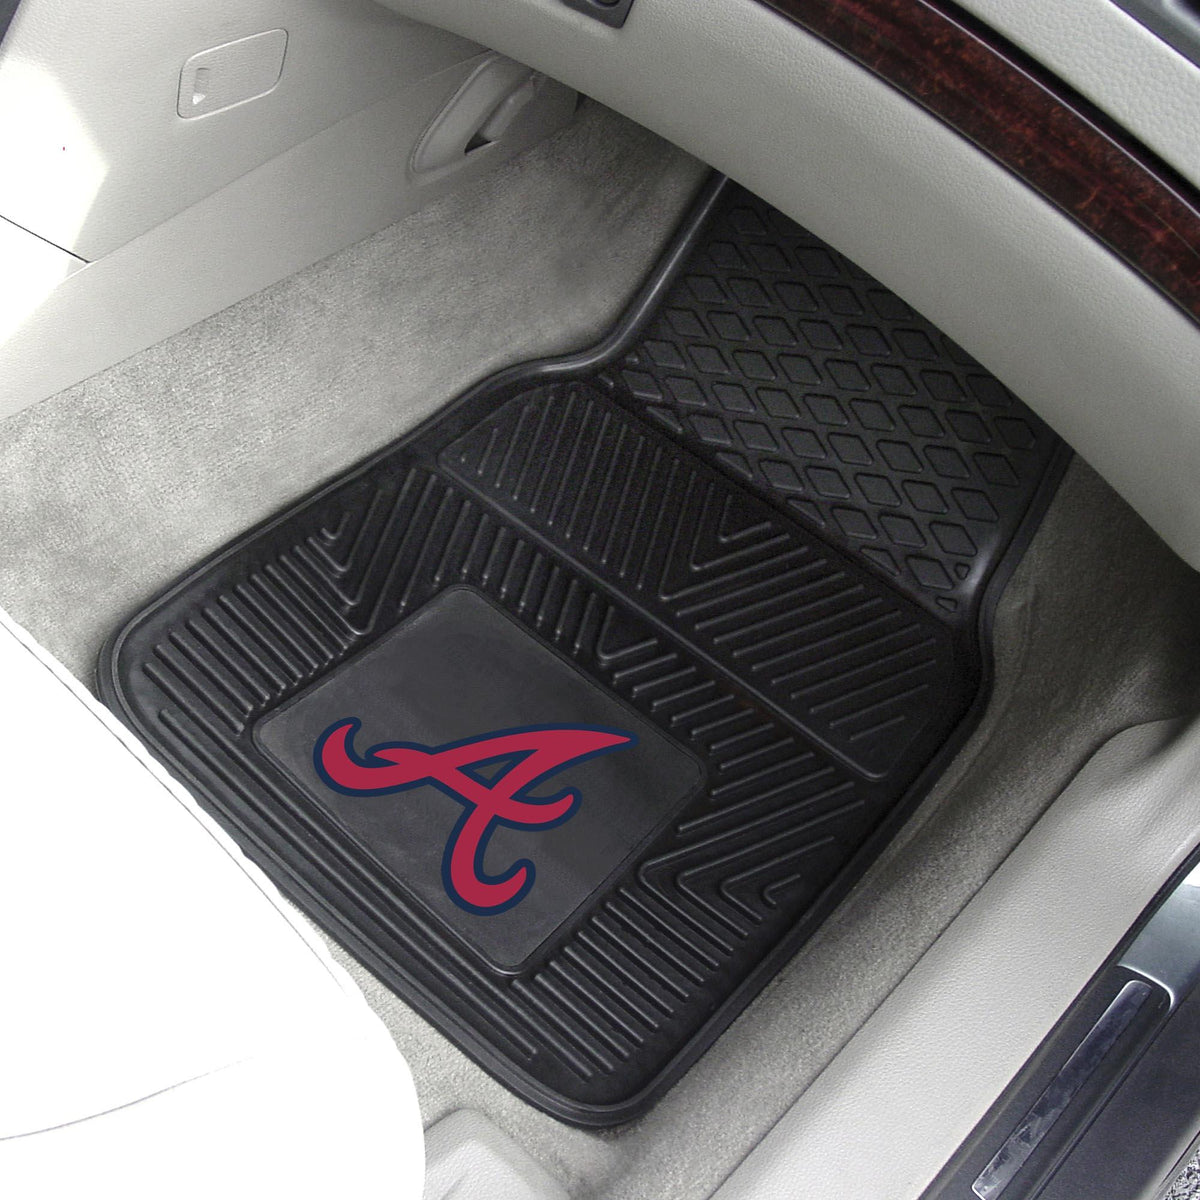 MLB - Vinyl Car Mat, 2-Piece Set MLB Mats, Front Car Mats, 2-pc Vinyl Car Mat Set, MLB, Auto Fan Mats Atlanta Braves